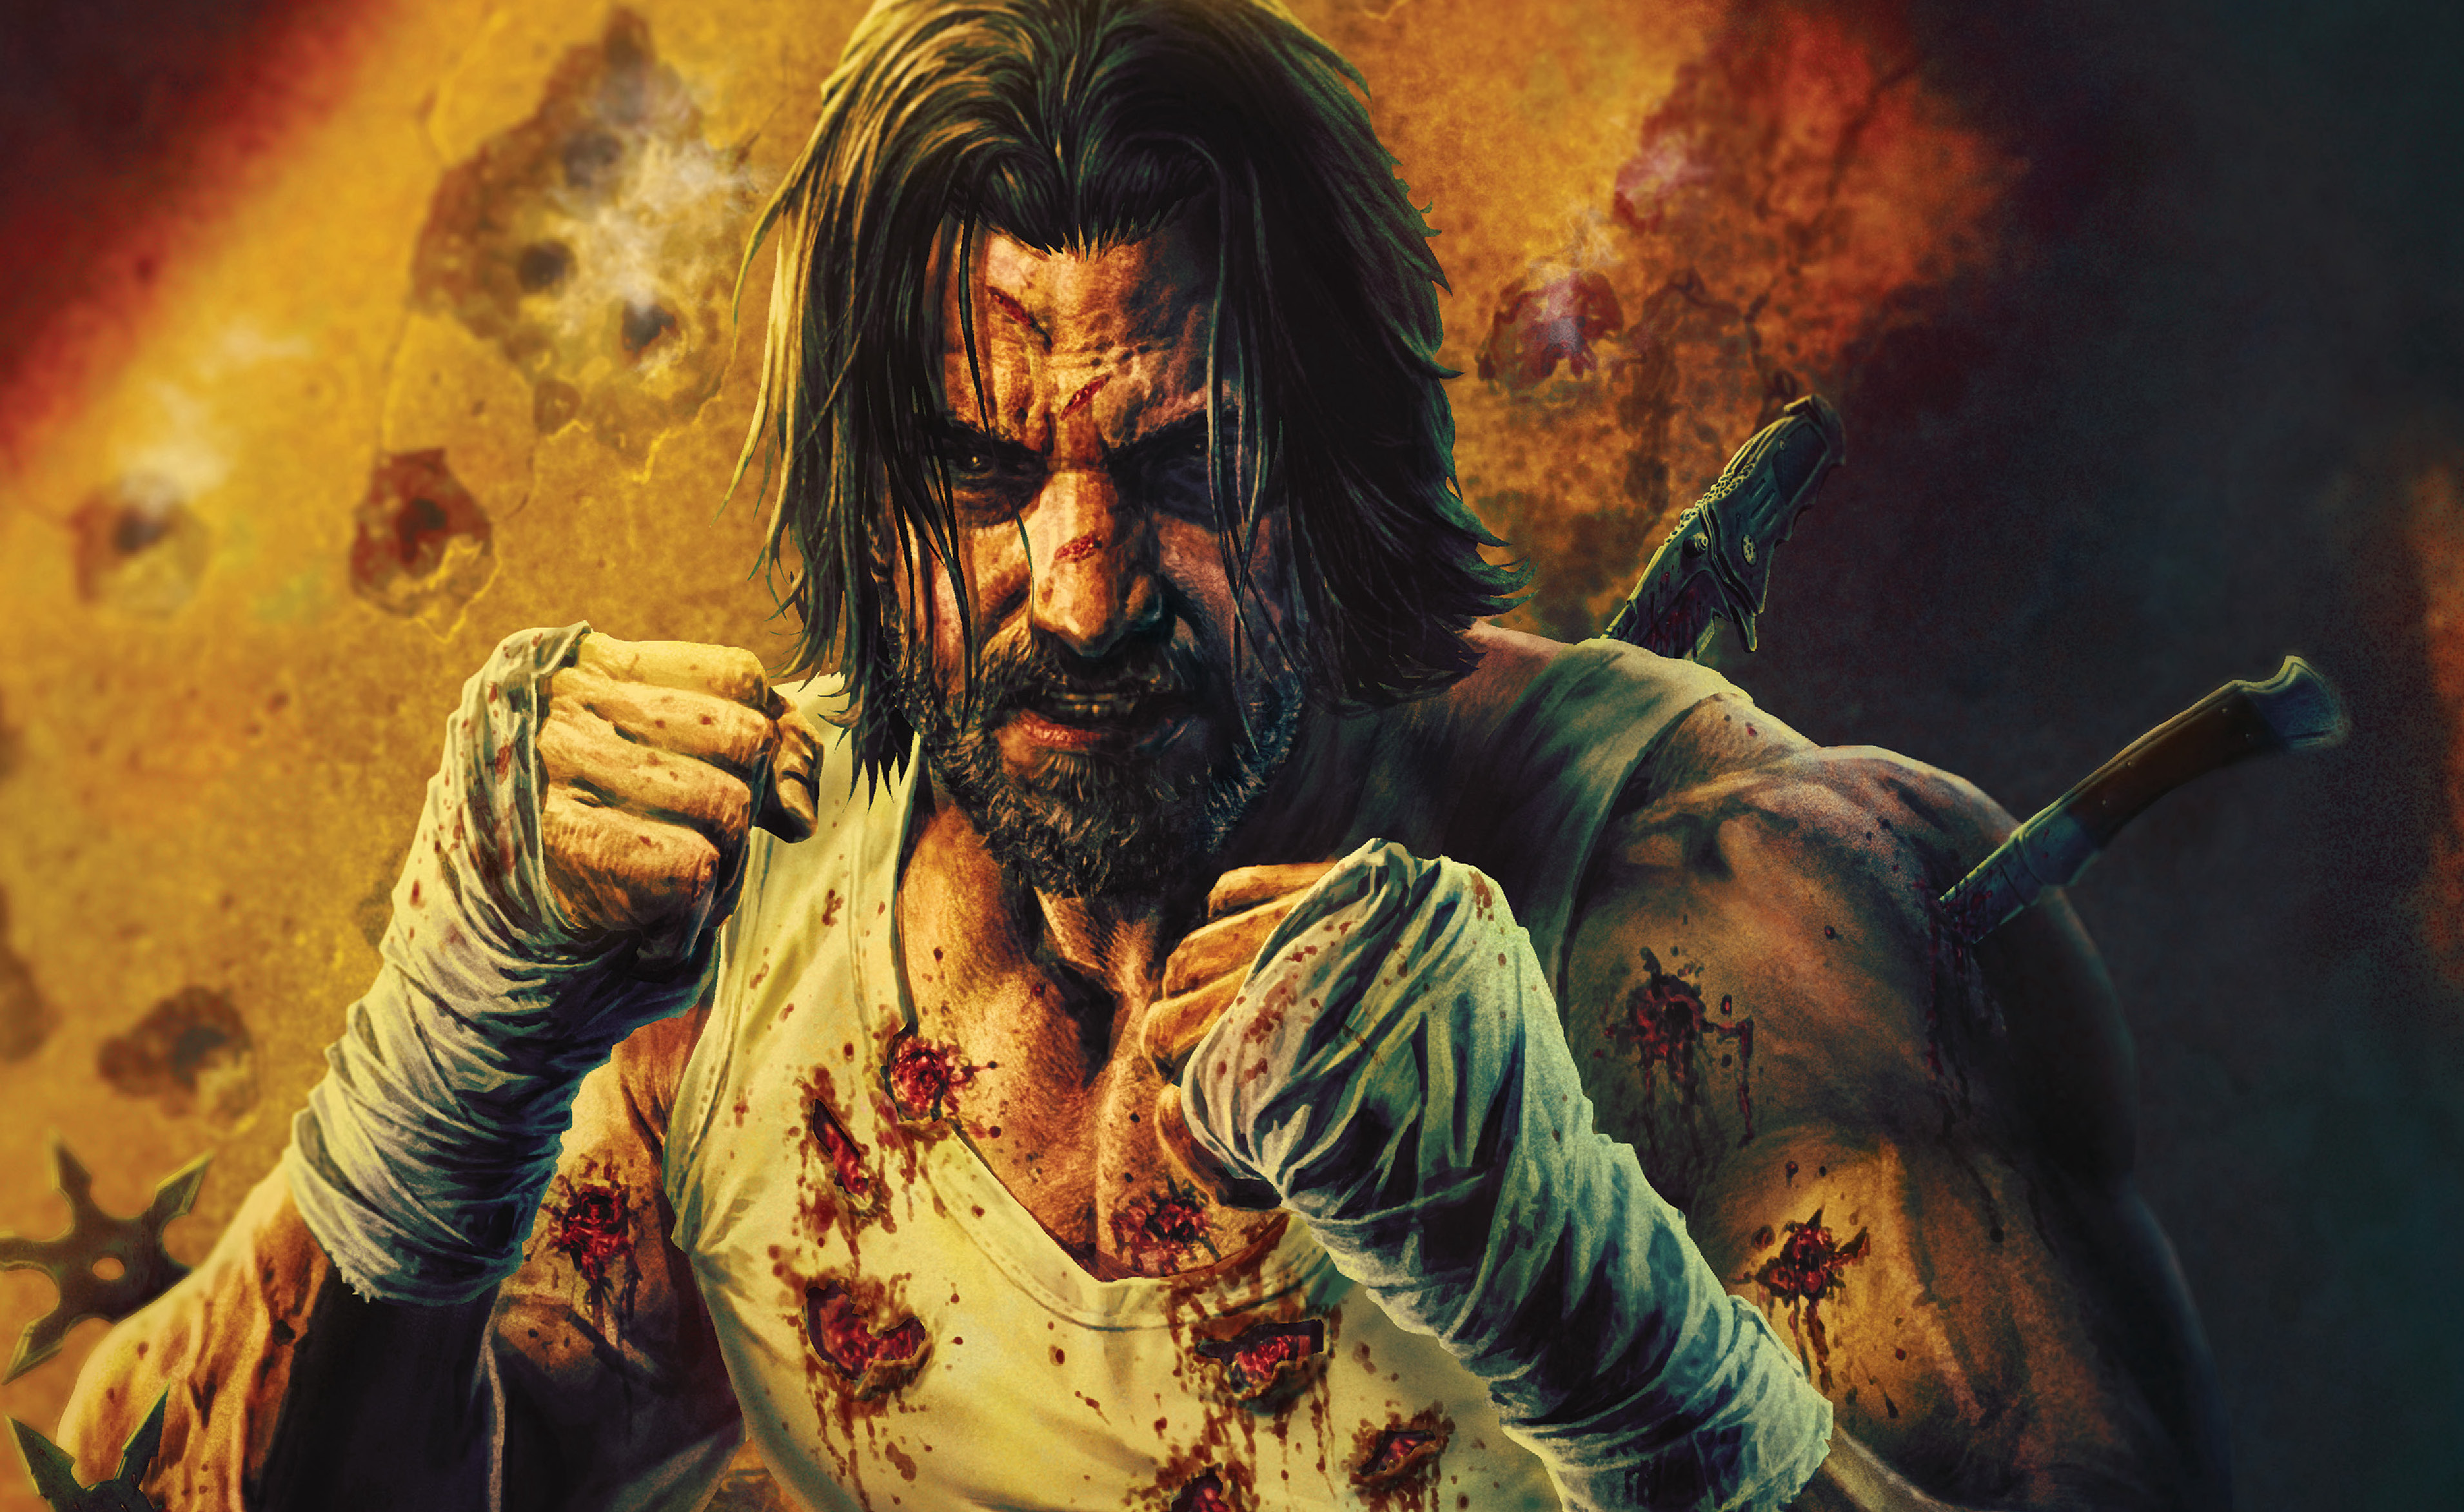 Keanu Reeves as B stabbed in the back with knives wearing a bloodied white t-shirt in a cover for BRZRKR